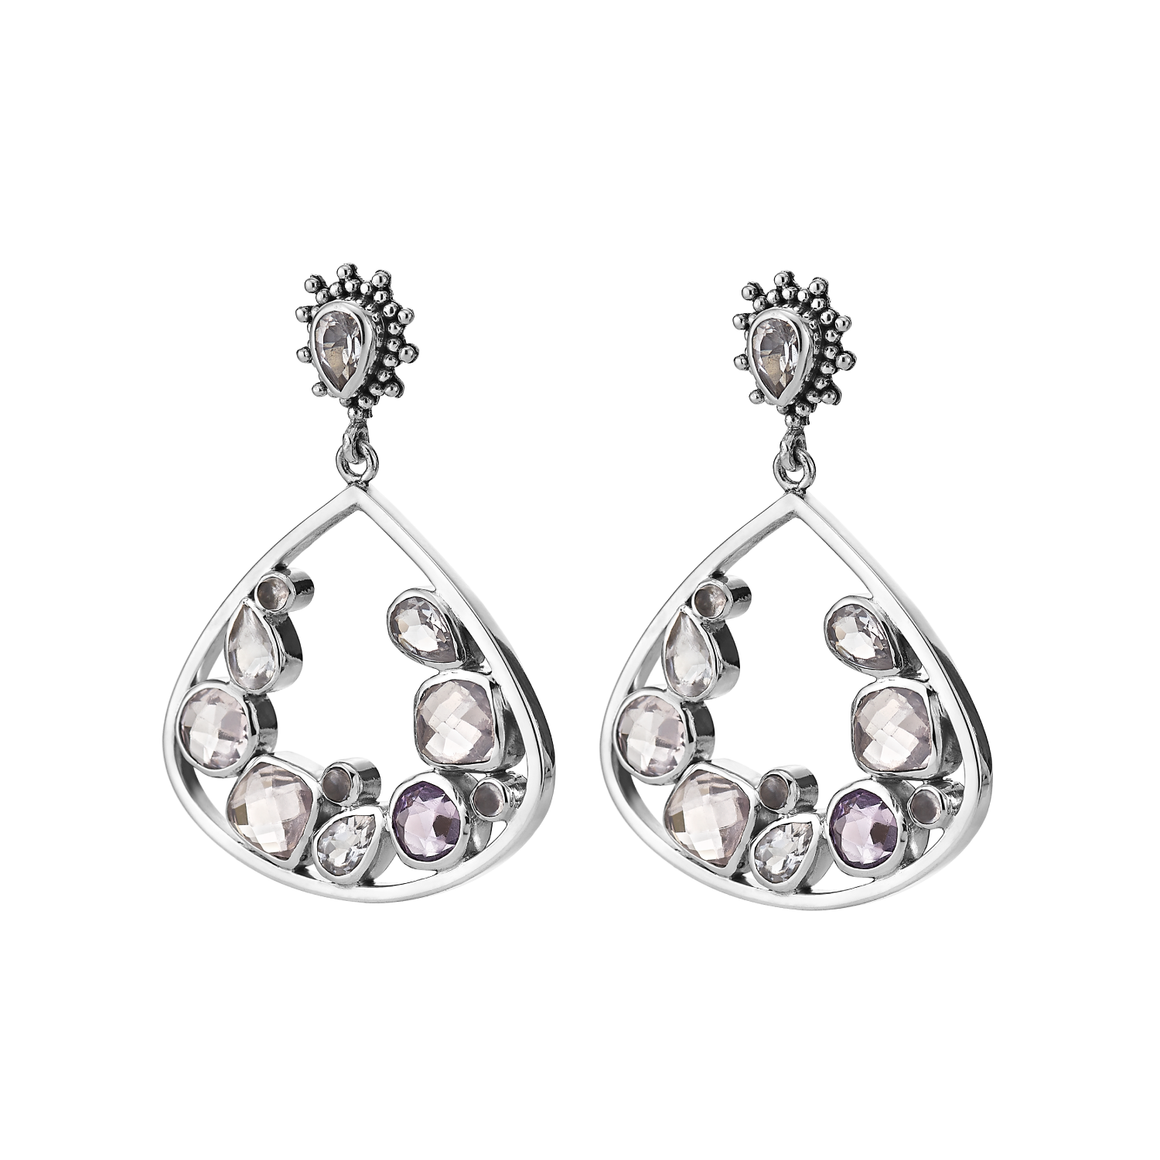 Pinking of You Earrings from Bonn Bons by Lori Bonn (115206RS)